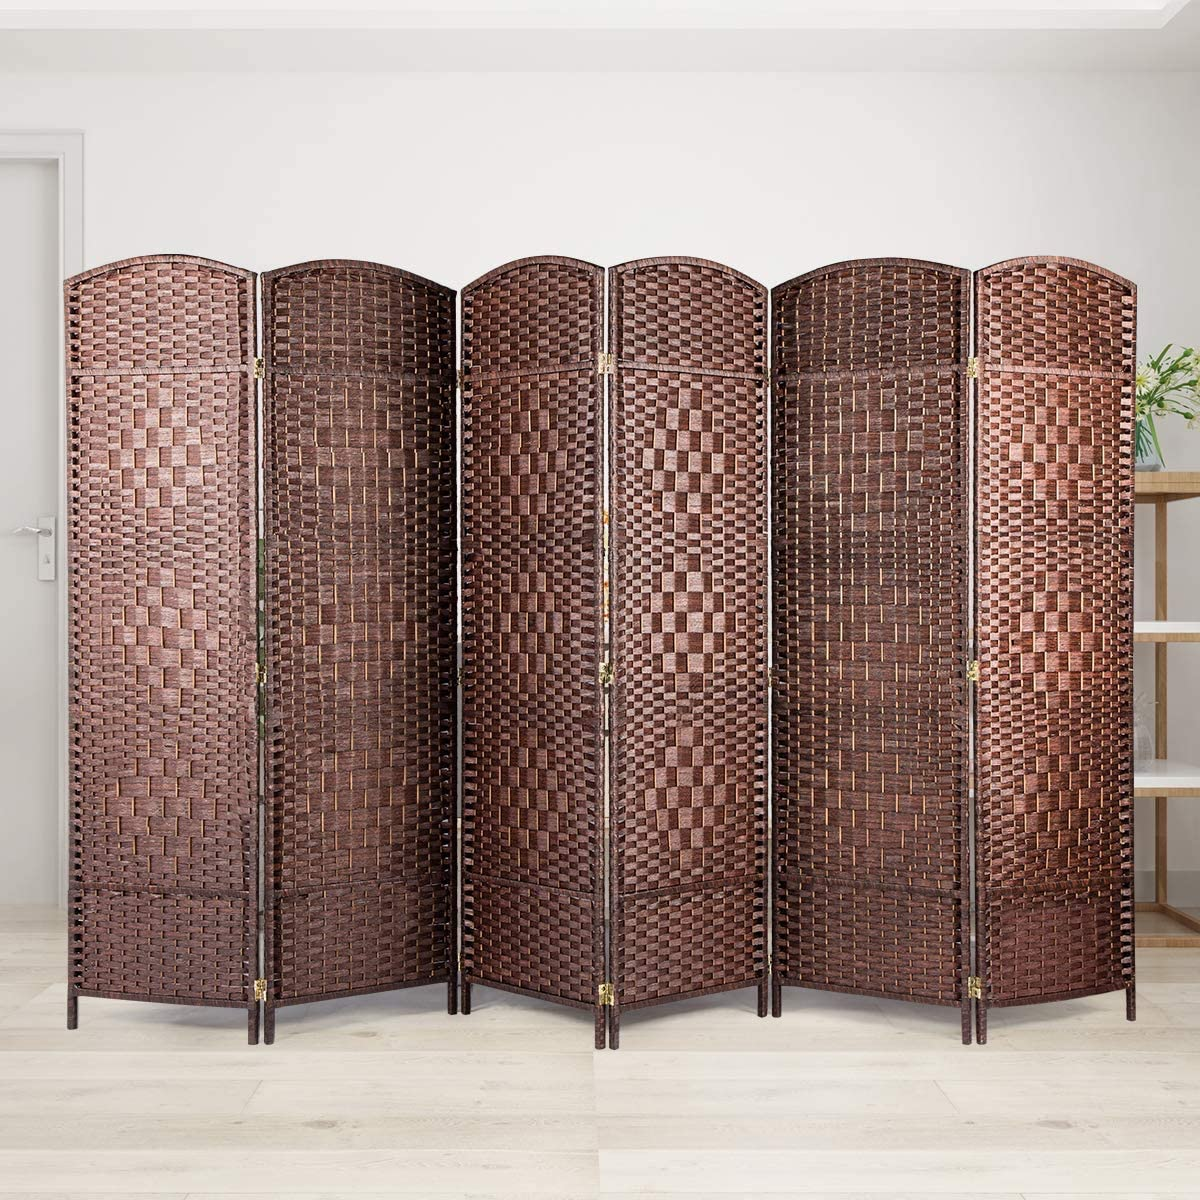 BANFANG Room Divider Privacy Screen – Foldable Panel Partition Wall Divider, Room Dividers and Folding Privacy Screens, Double Hinged 6 Panel, Brown